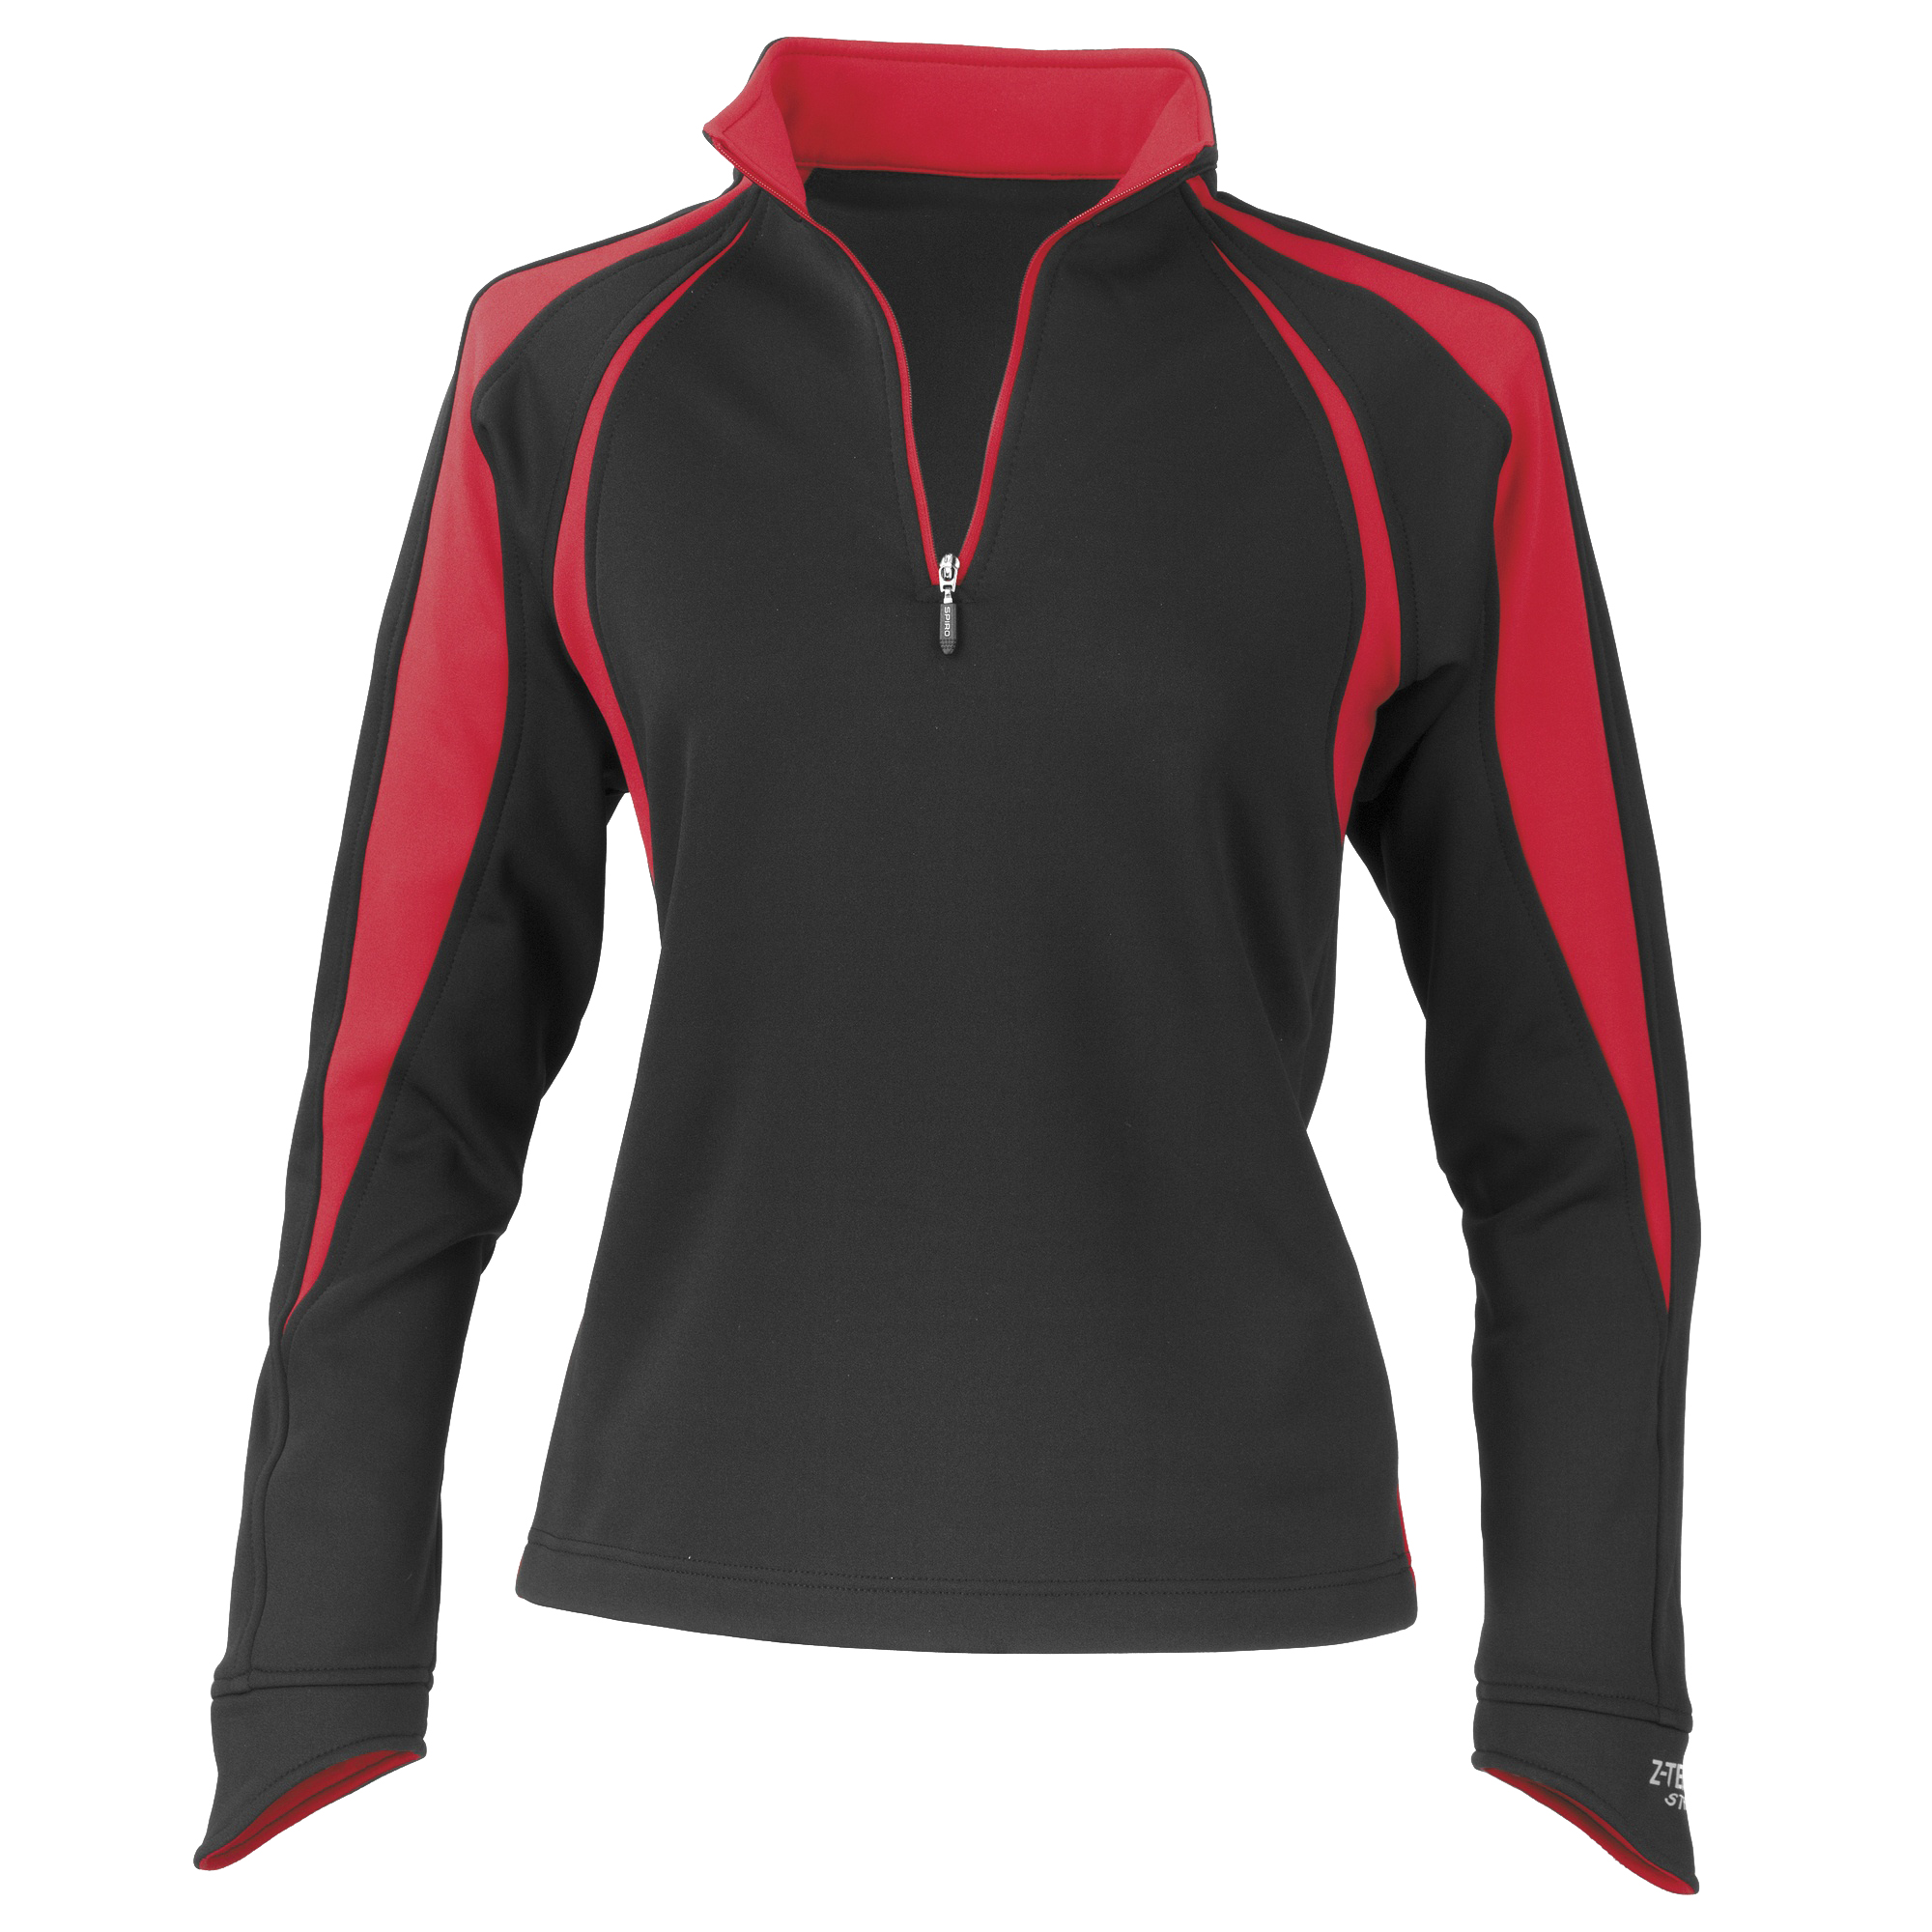 La-Femme-Ladies-Womens-Spiro-Sprint-Performance-Sports-Top-RW1455